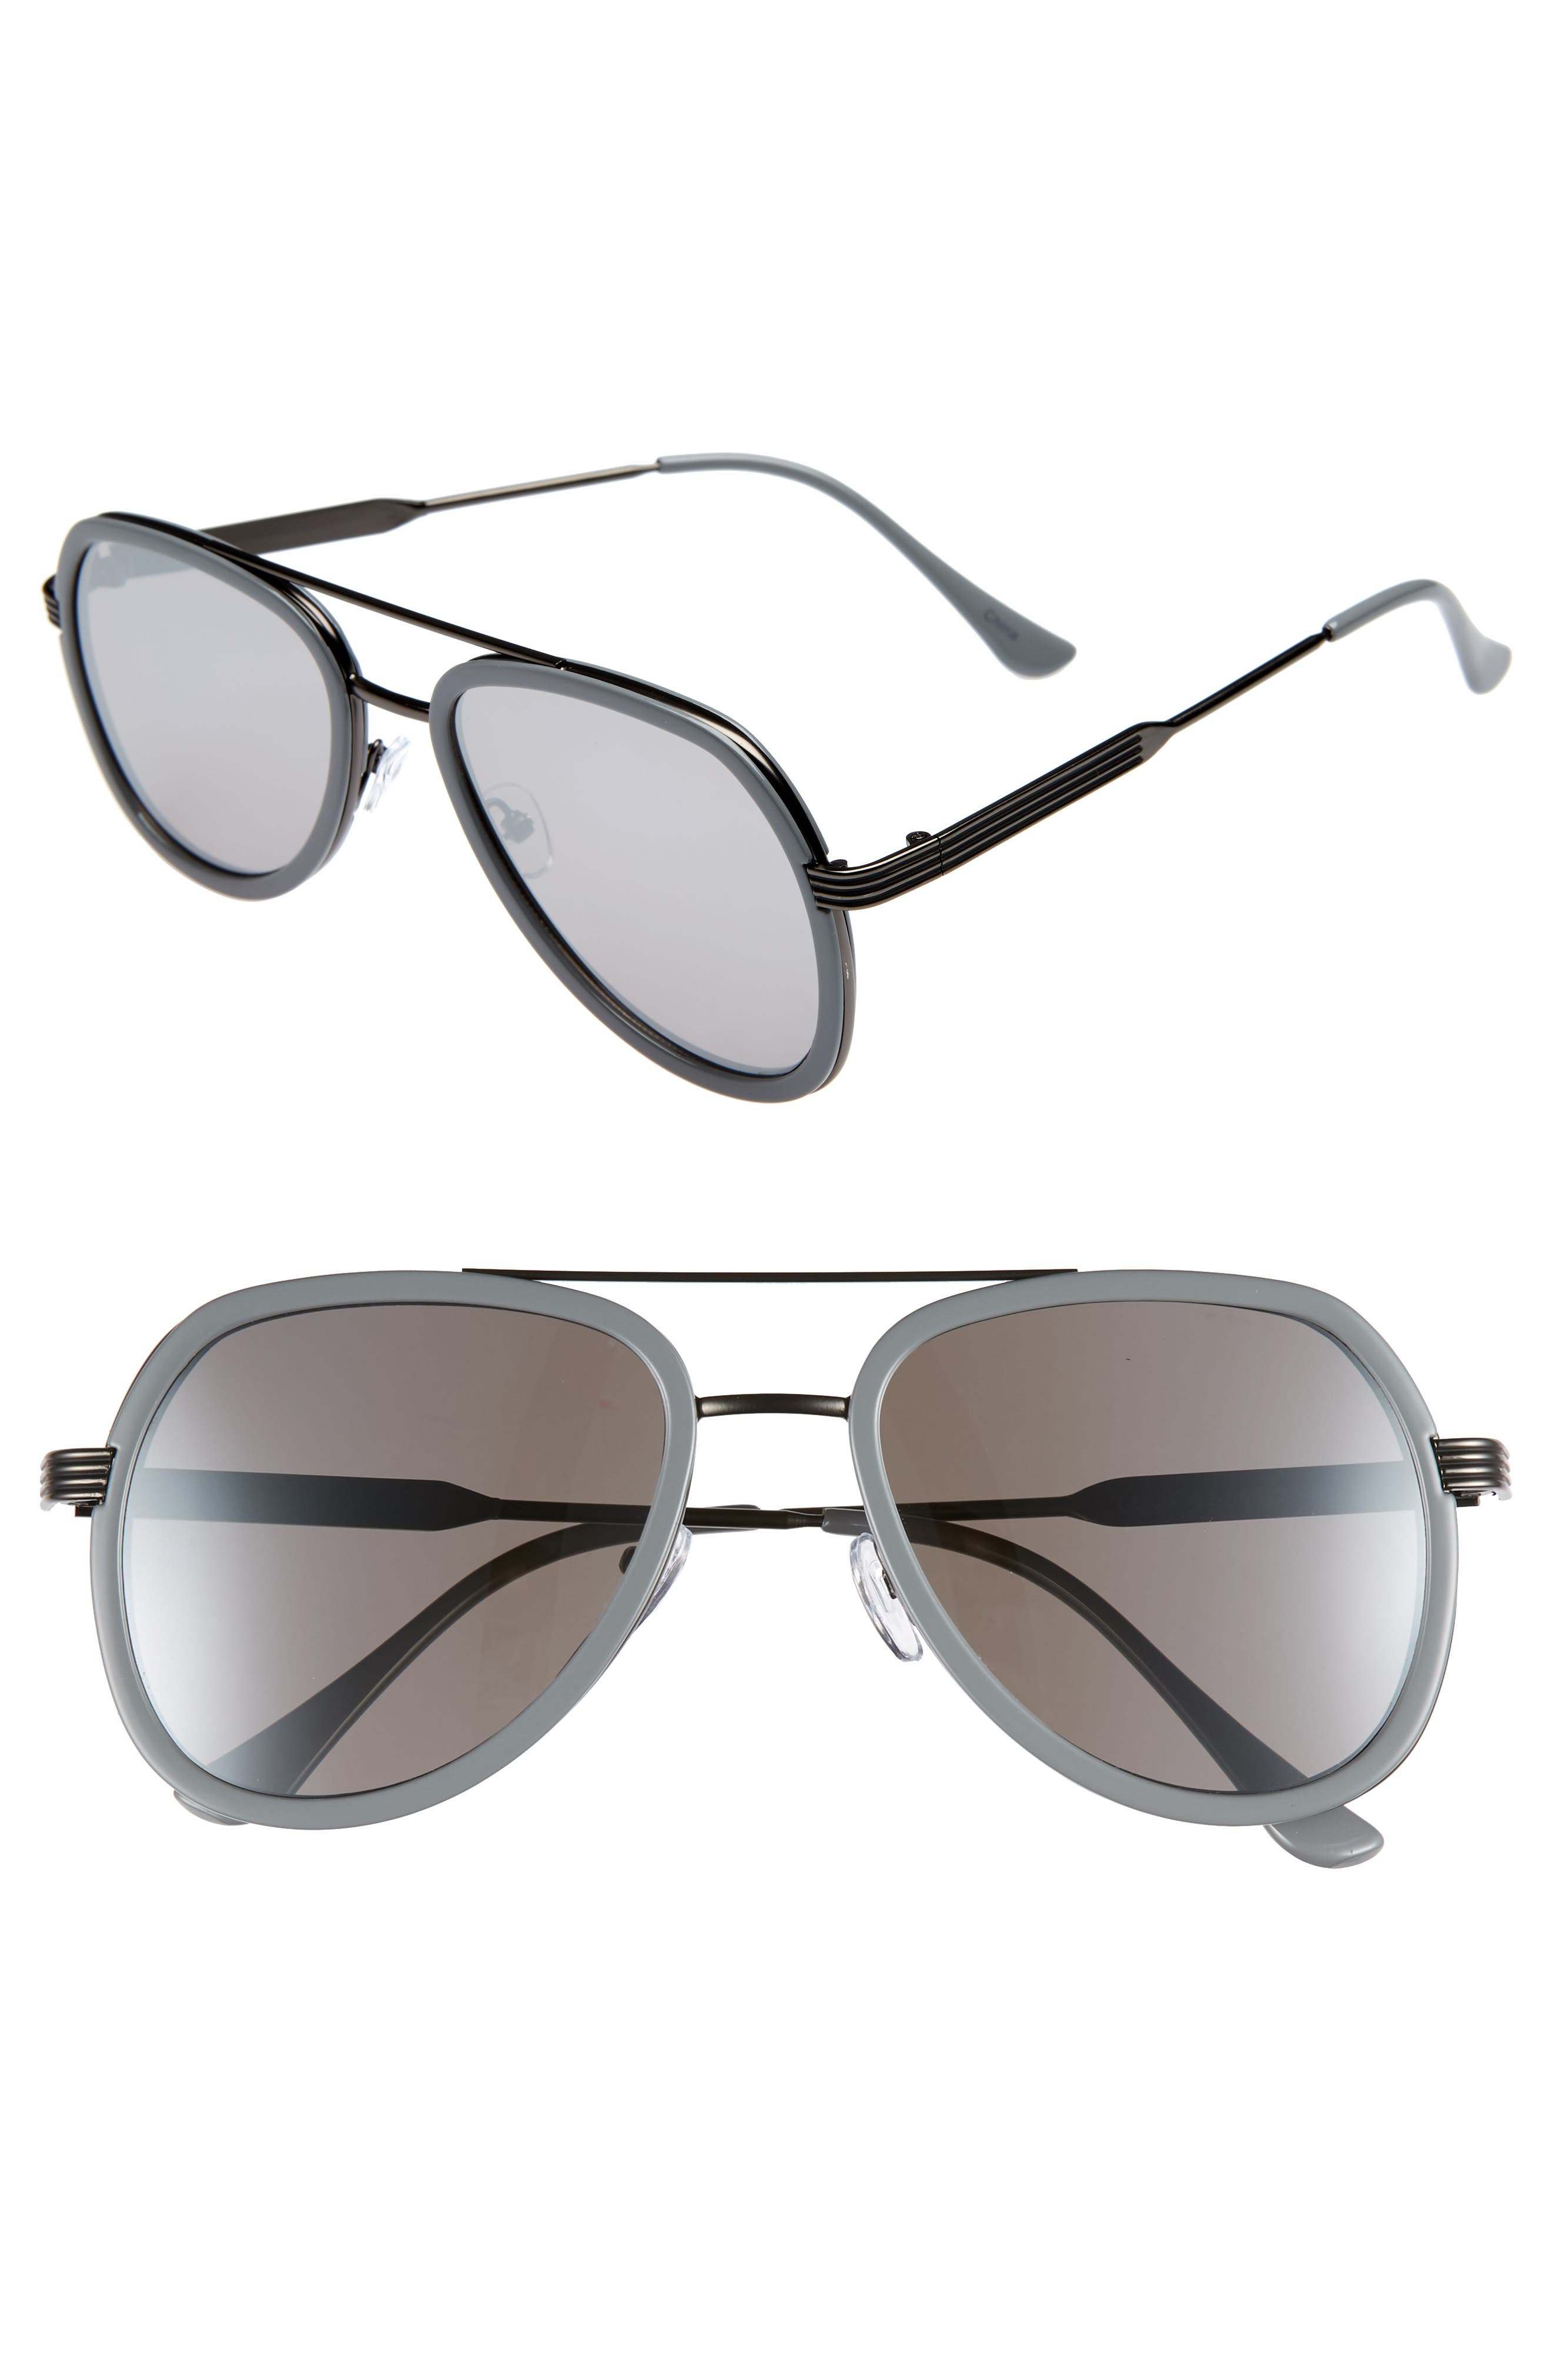 50mm Aviator Sunglasses,                             Main thumbnail 1, color,                             GREY